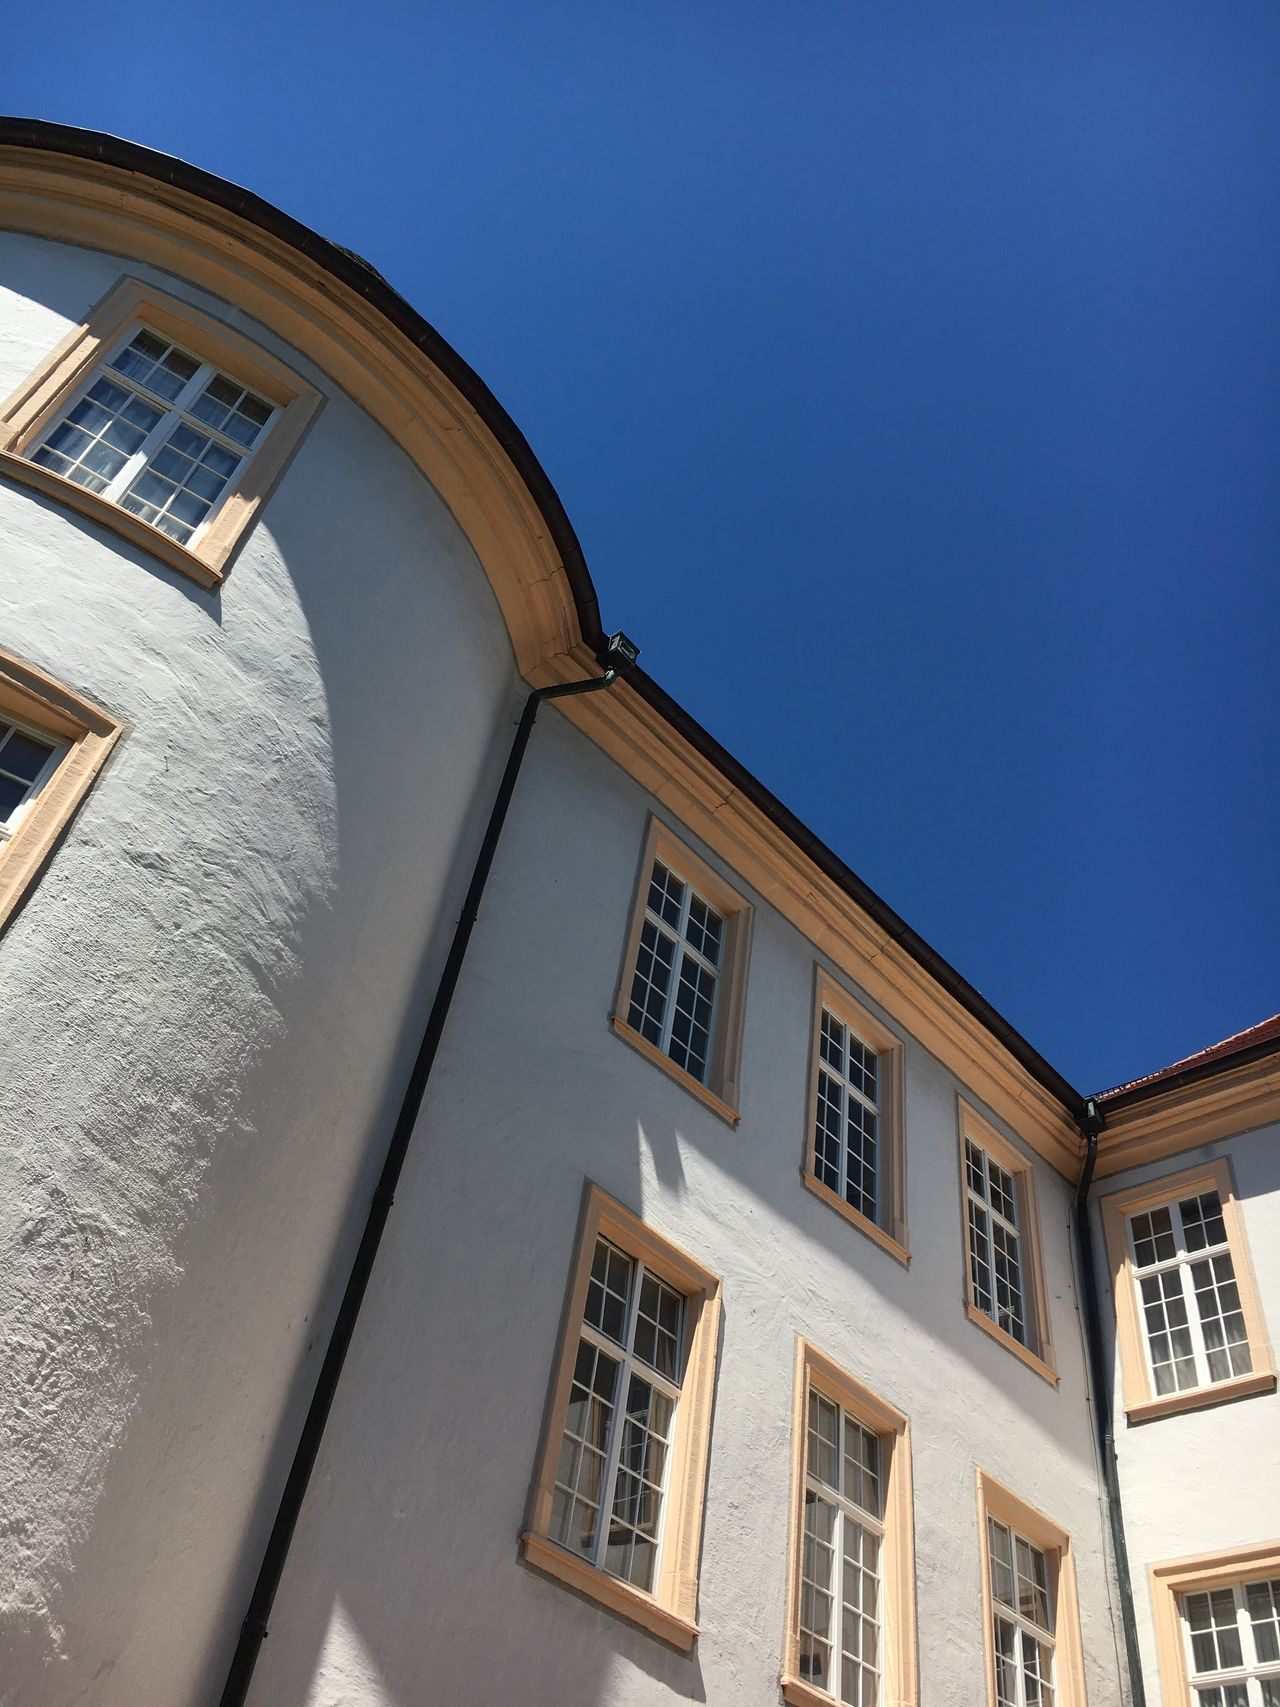 Architecture Built Structure Building Exterior Window Low Angle View Day No People Clear Sky Outdoors Sky City Ettlingen Schloss Castle